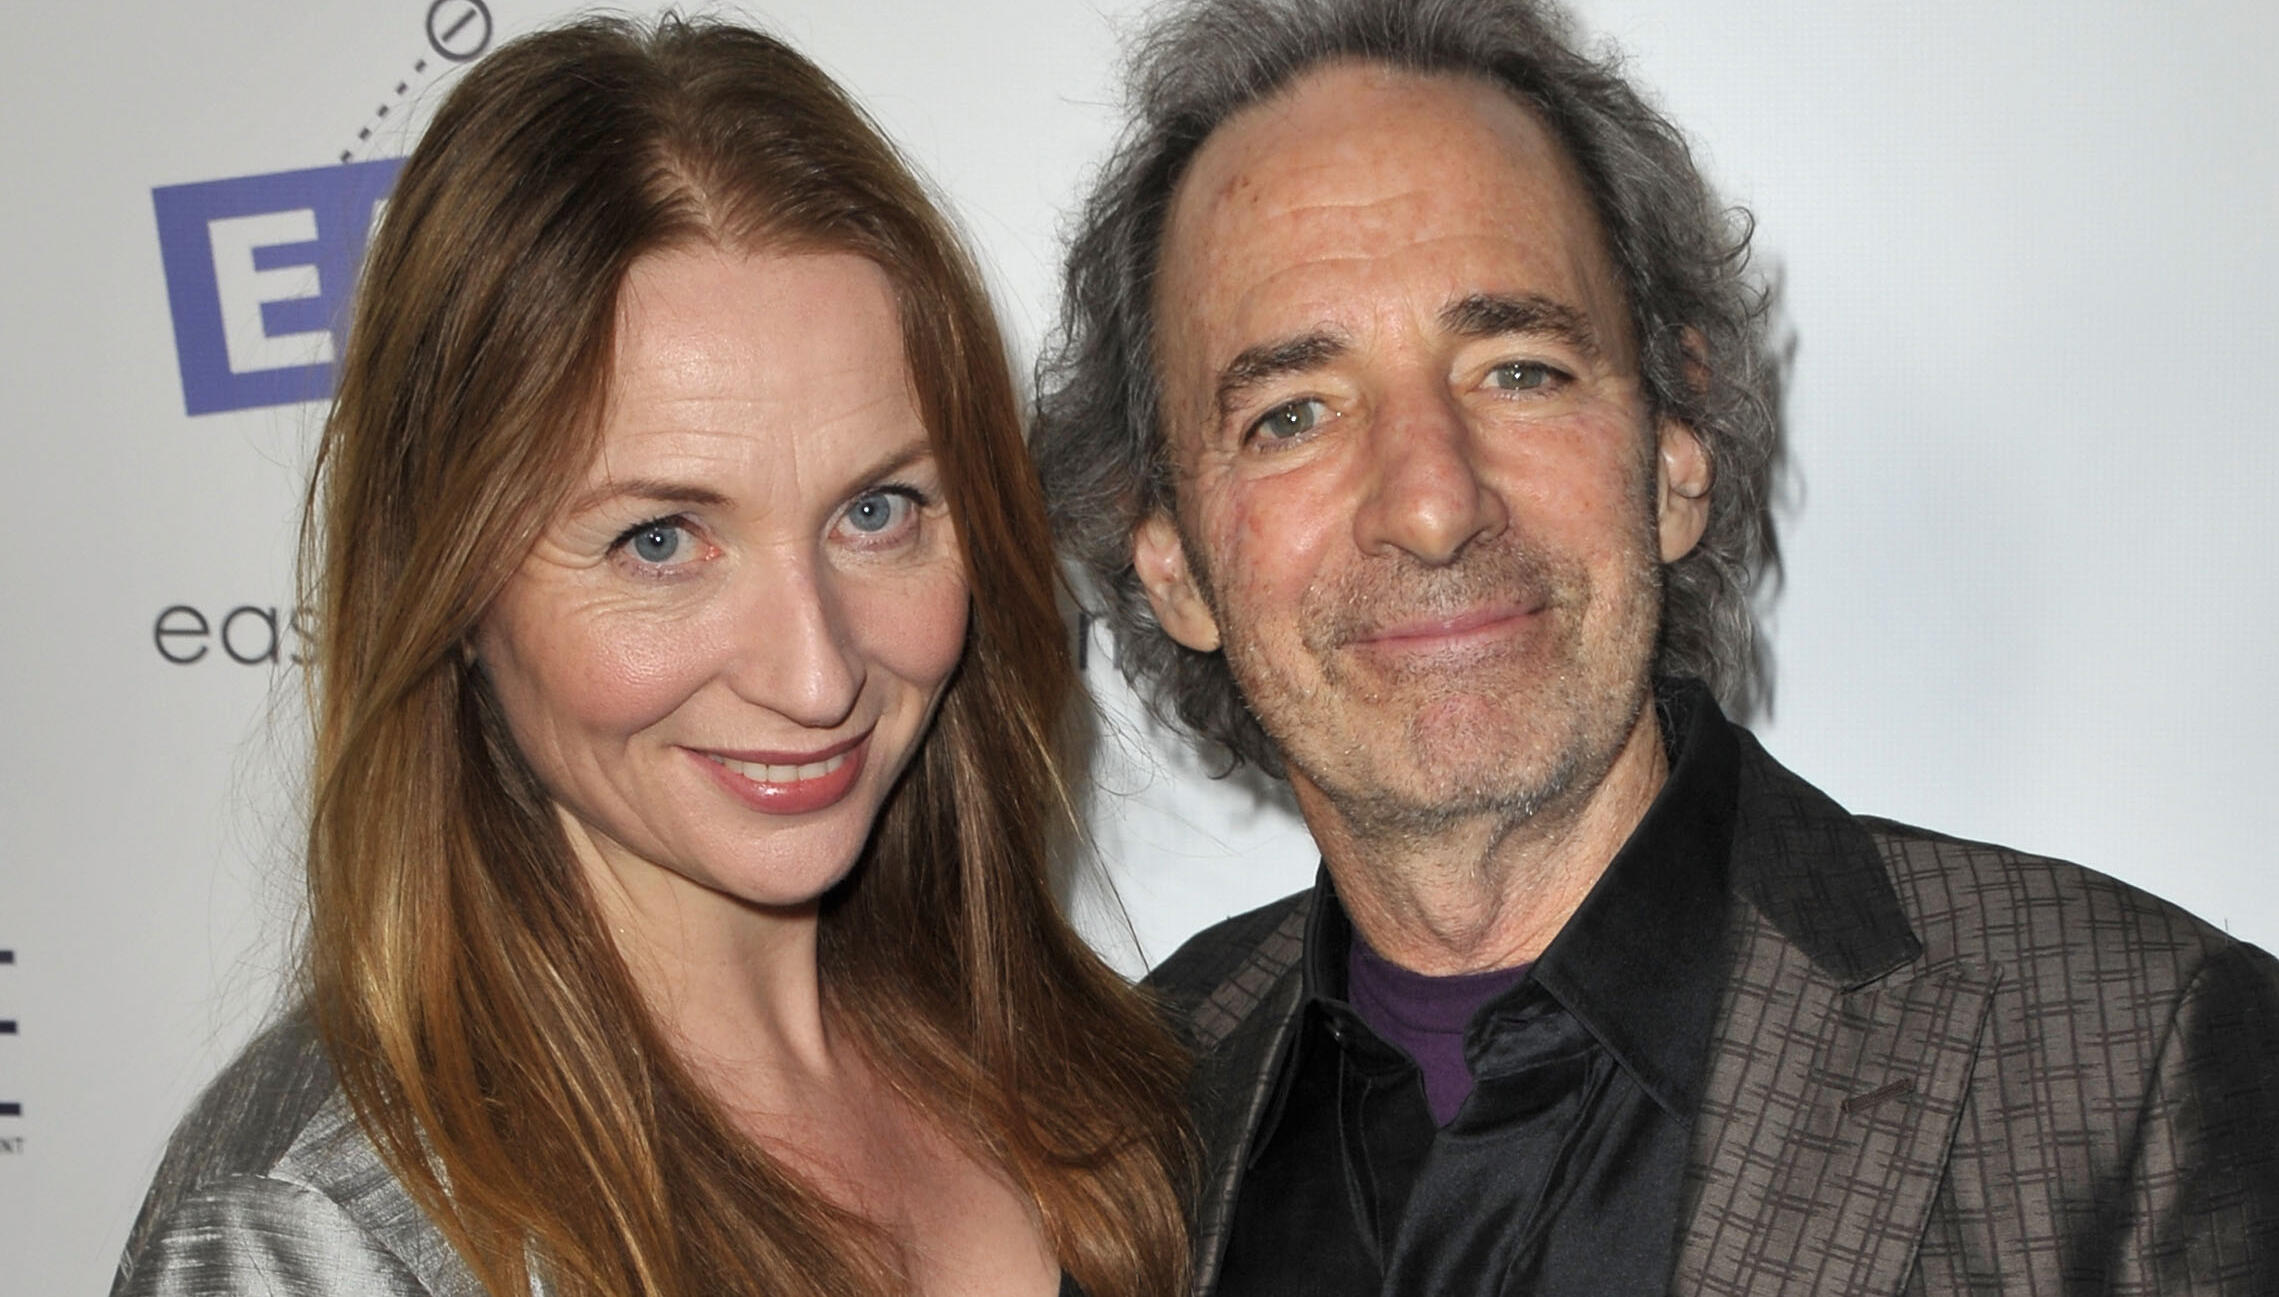 Harry Shearer, Judith Owen Amazed At How 'The Simpsons' Predicts The Future